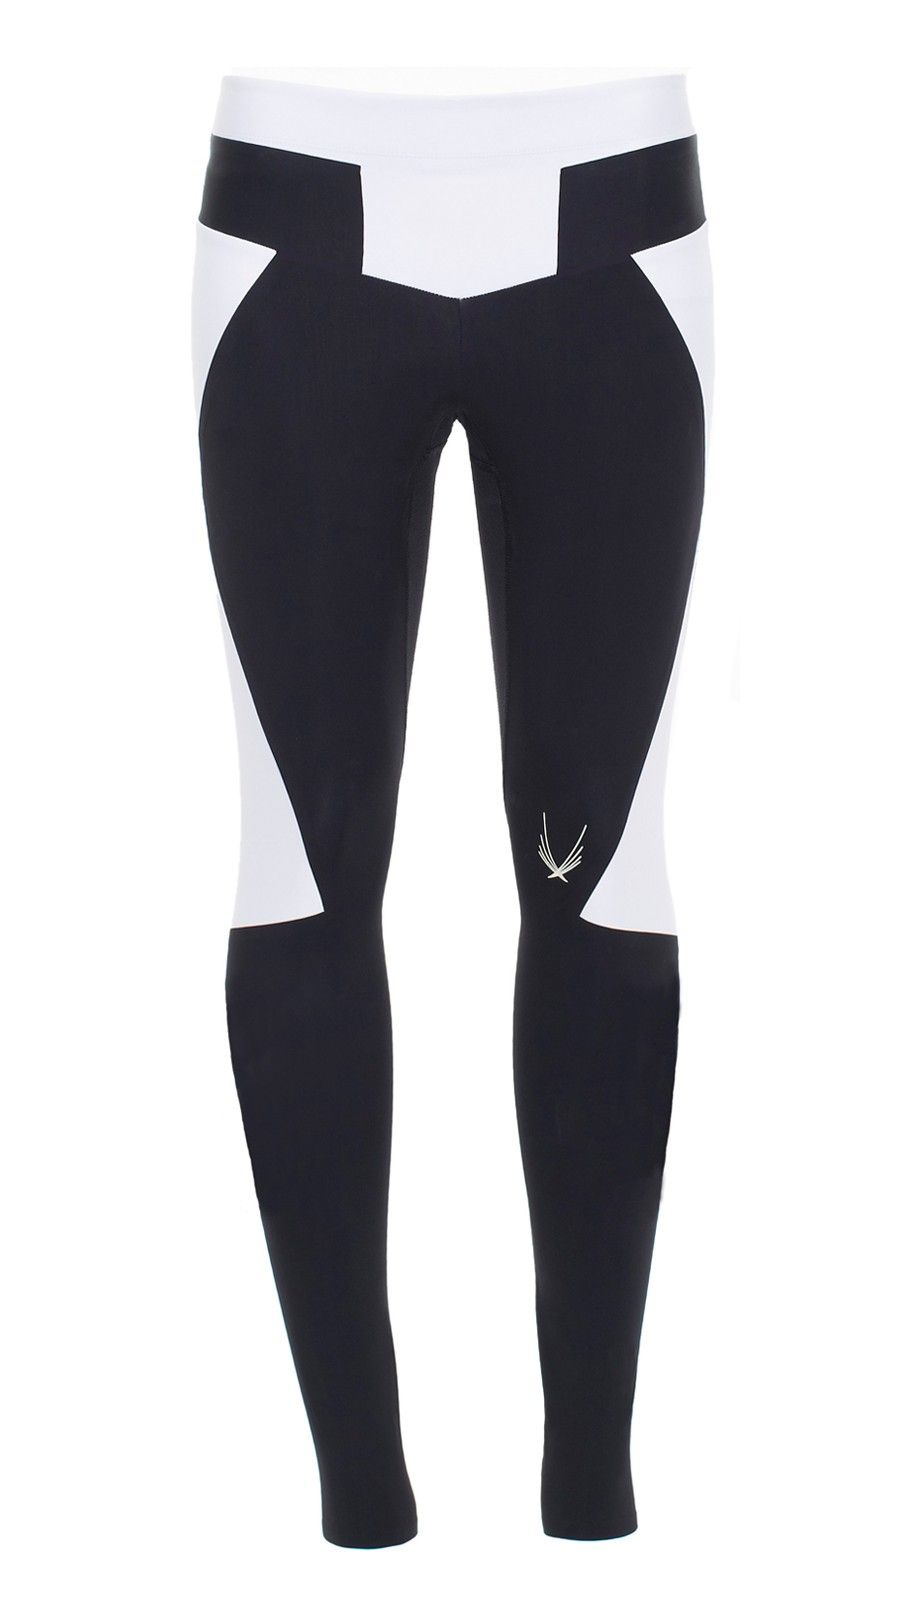 Lucas Hugh, Octane Leggings, Black These Lucas Hugh leggings are baseball inspired with strong, angular lines and block colours. Full-length, body-sculpting Octane leggings are the fashion forward choice for a strong workout look. The ultra-flattering design includes a firmly supportive, faced waistband, dynamic monochrome panelling and a zipped hem.